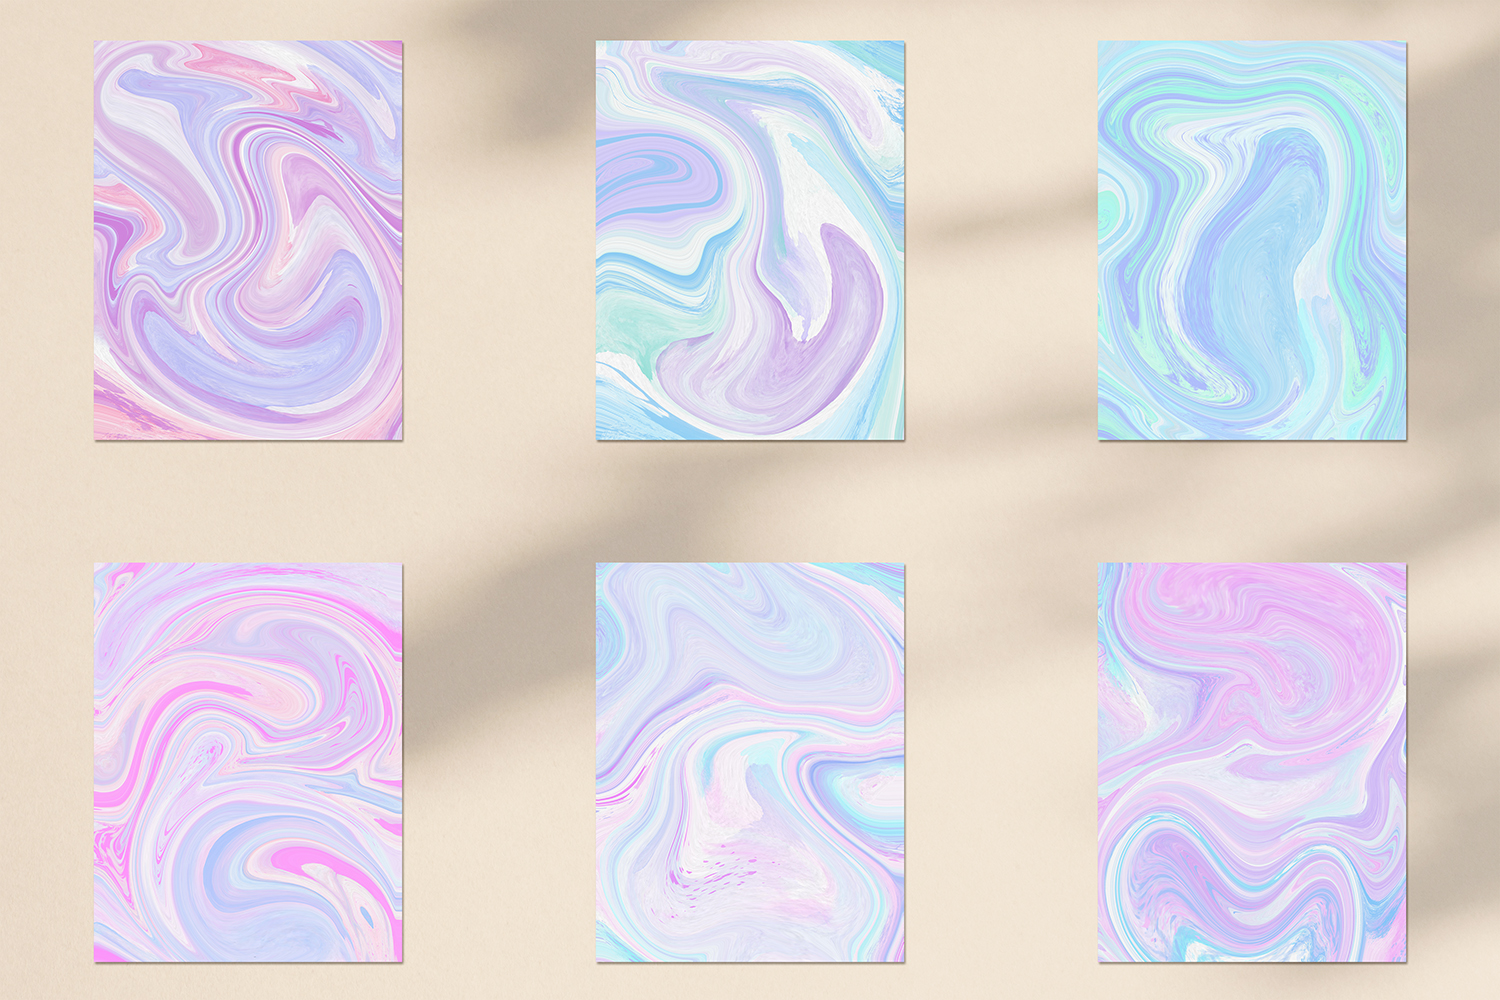 Agate Textures - Wedding Backgrounds example image 3